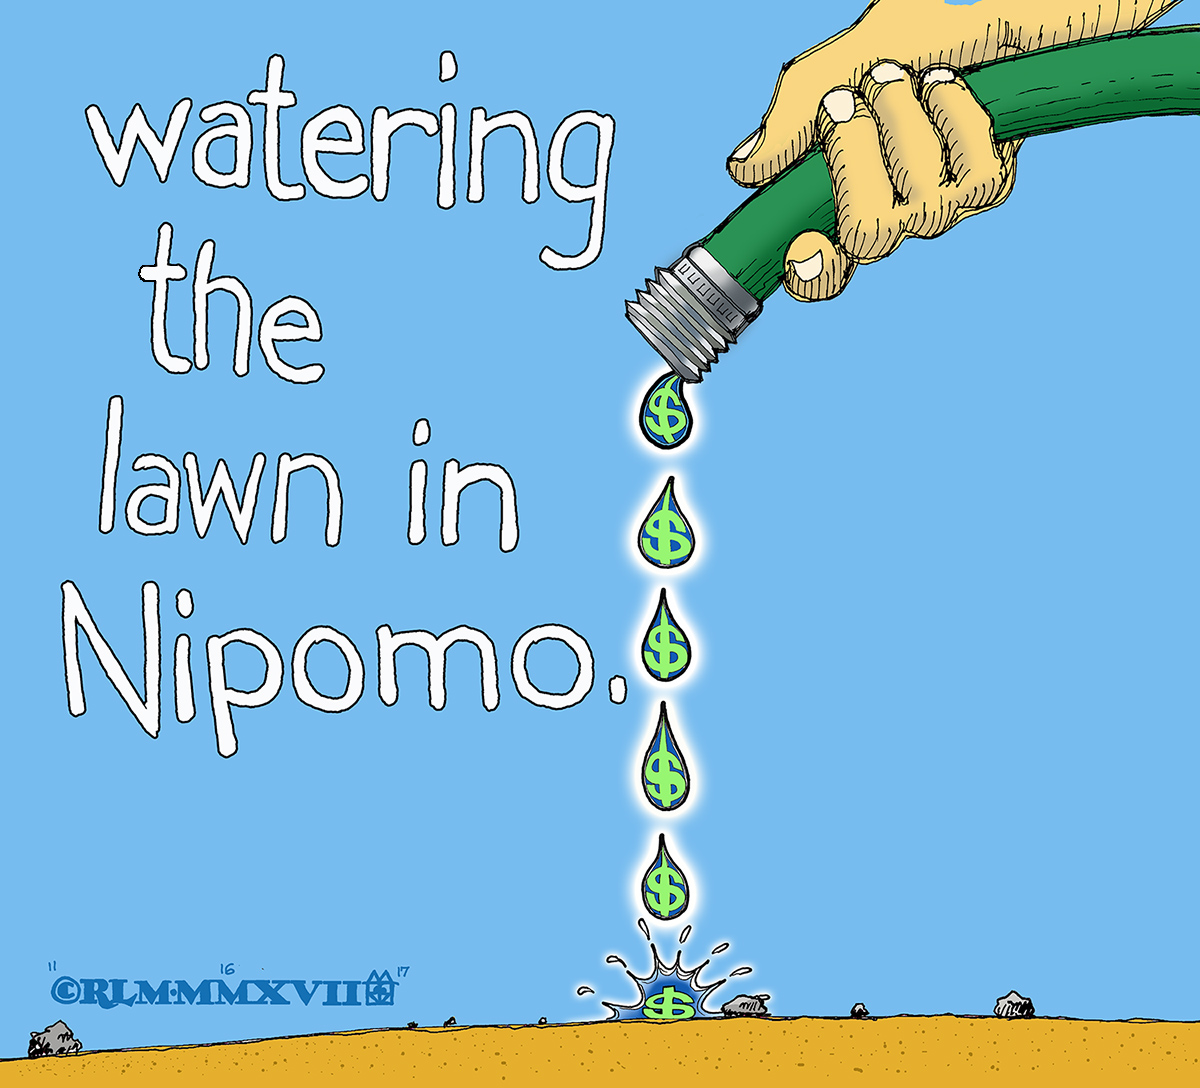 WATERING THE LAWN IN  NIPOMO